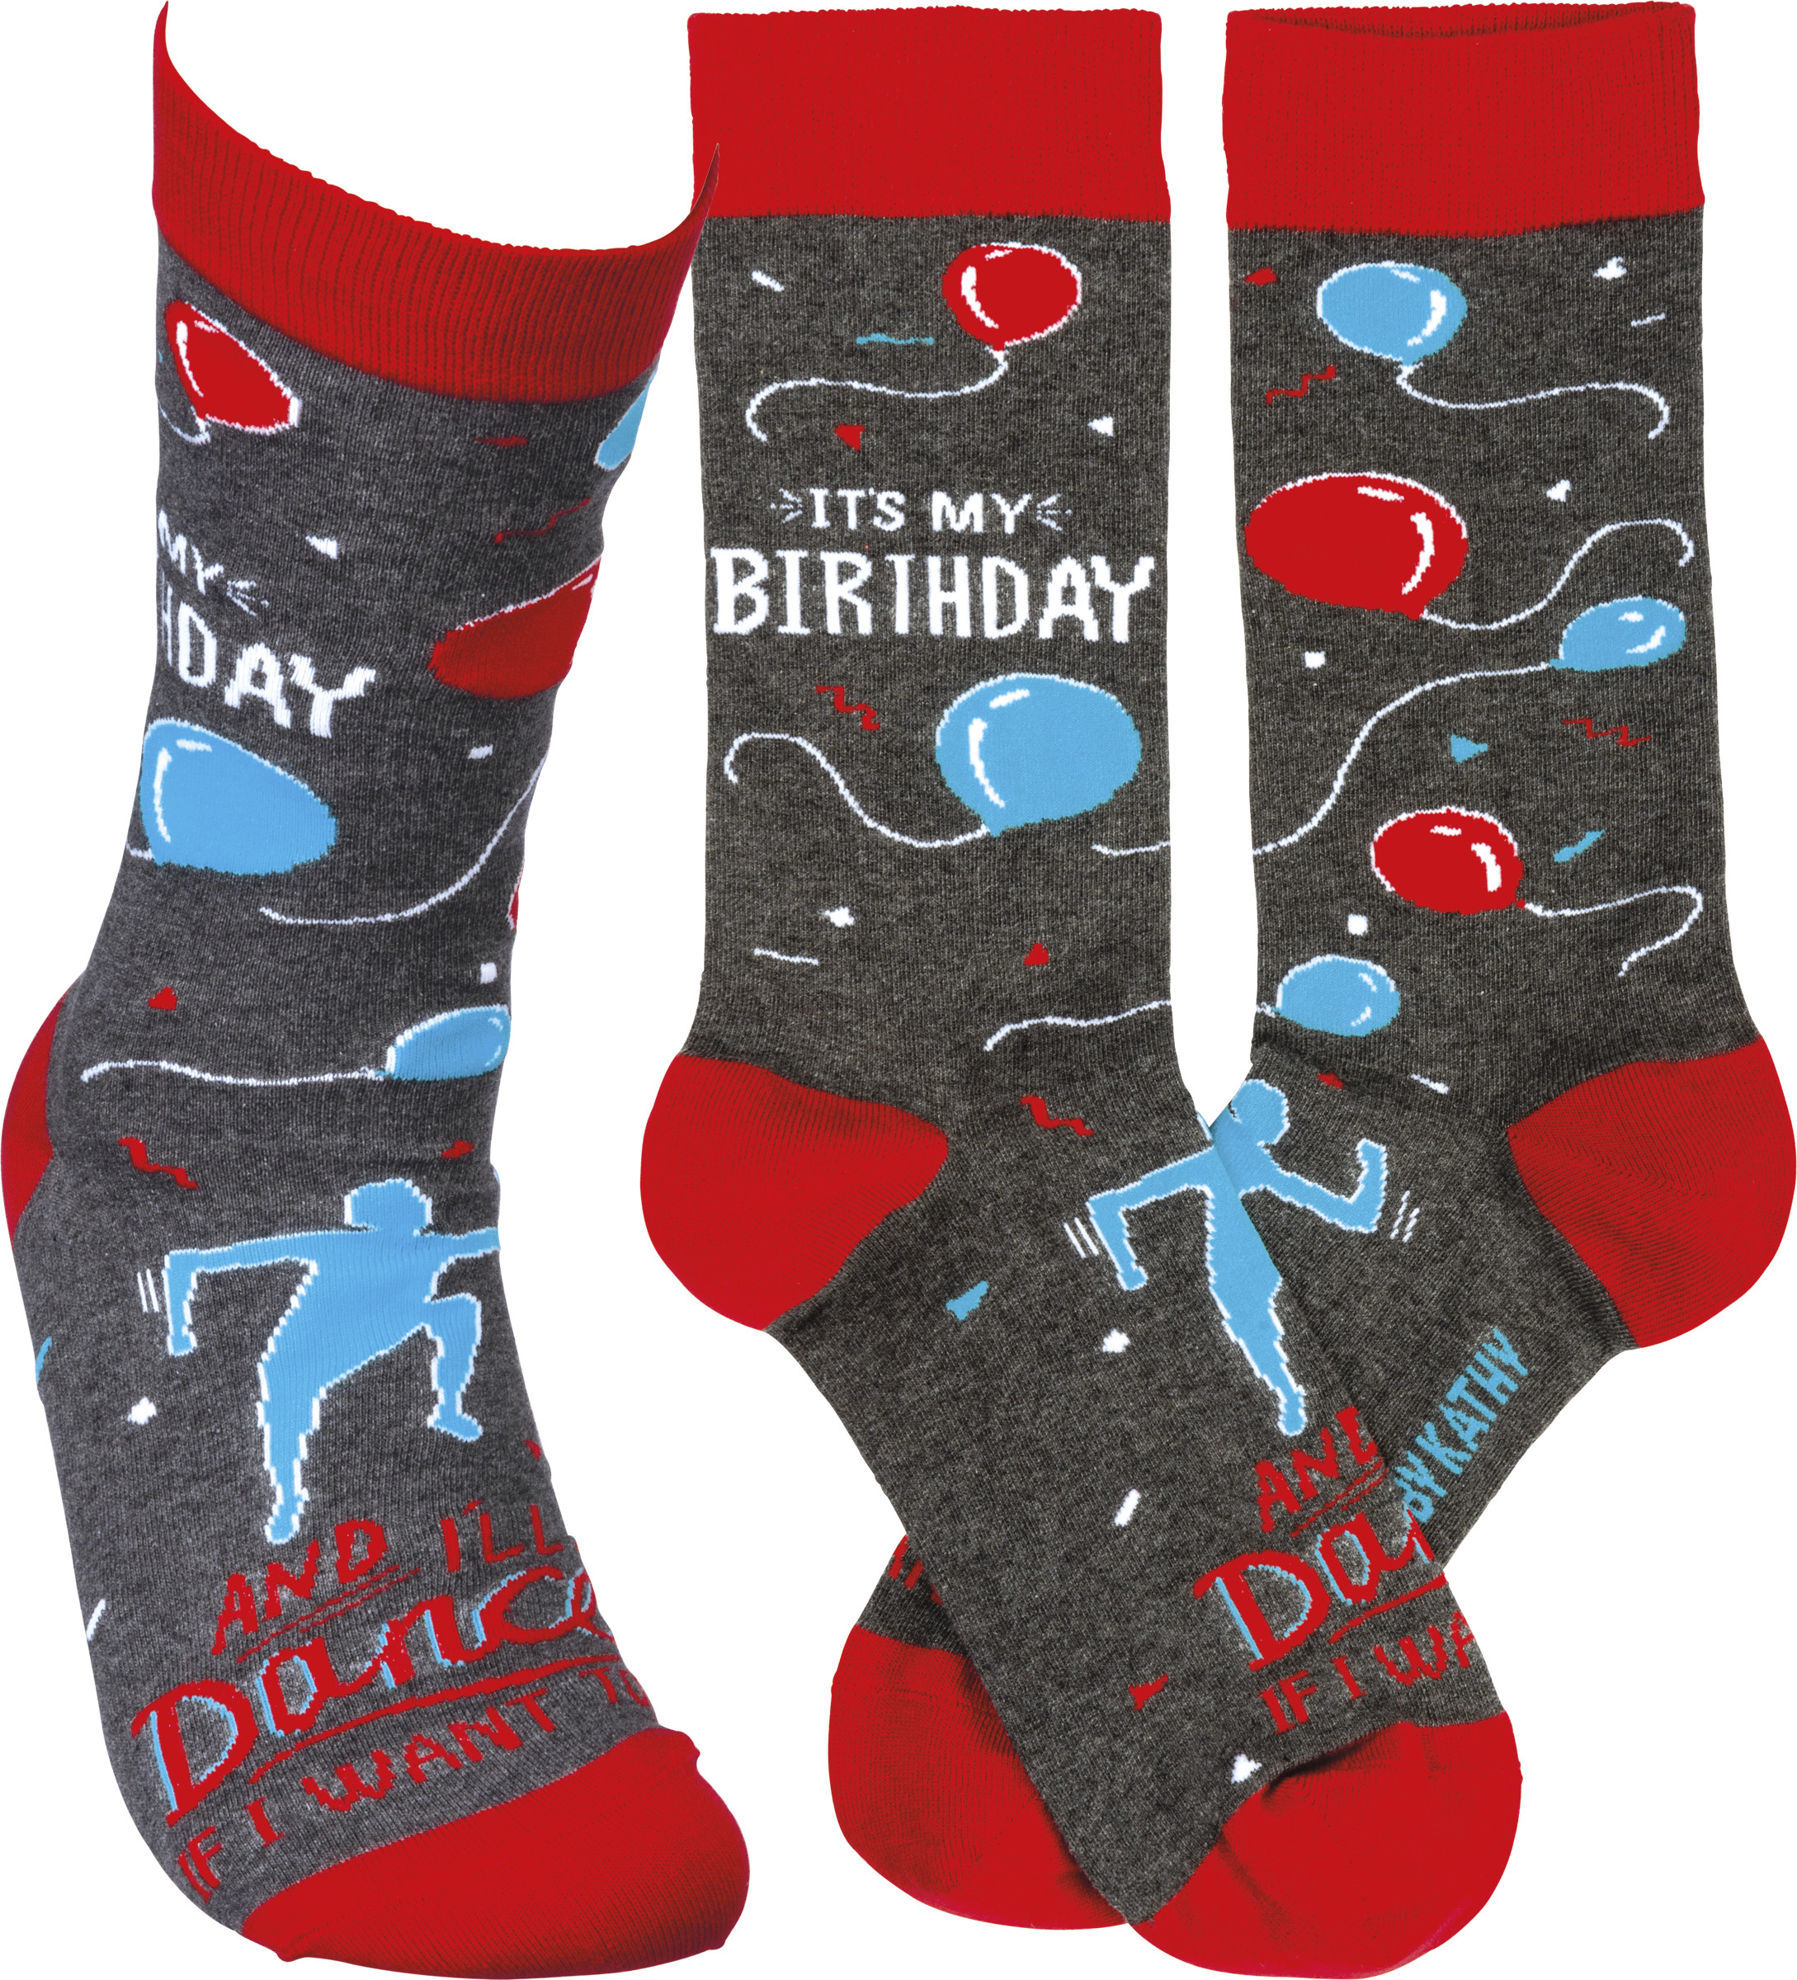 It's My Birthday Socks by Primitives by Kathy